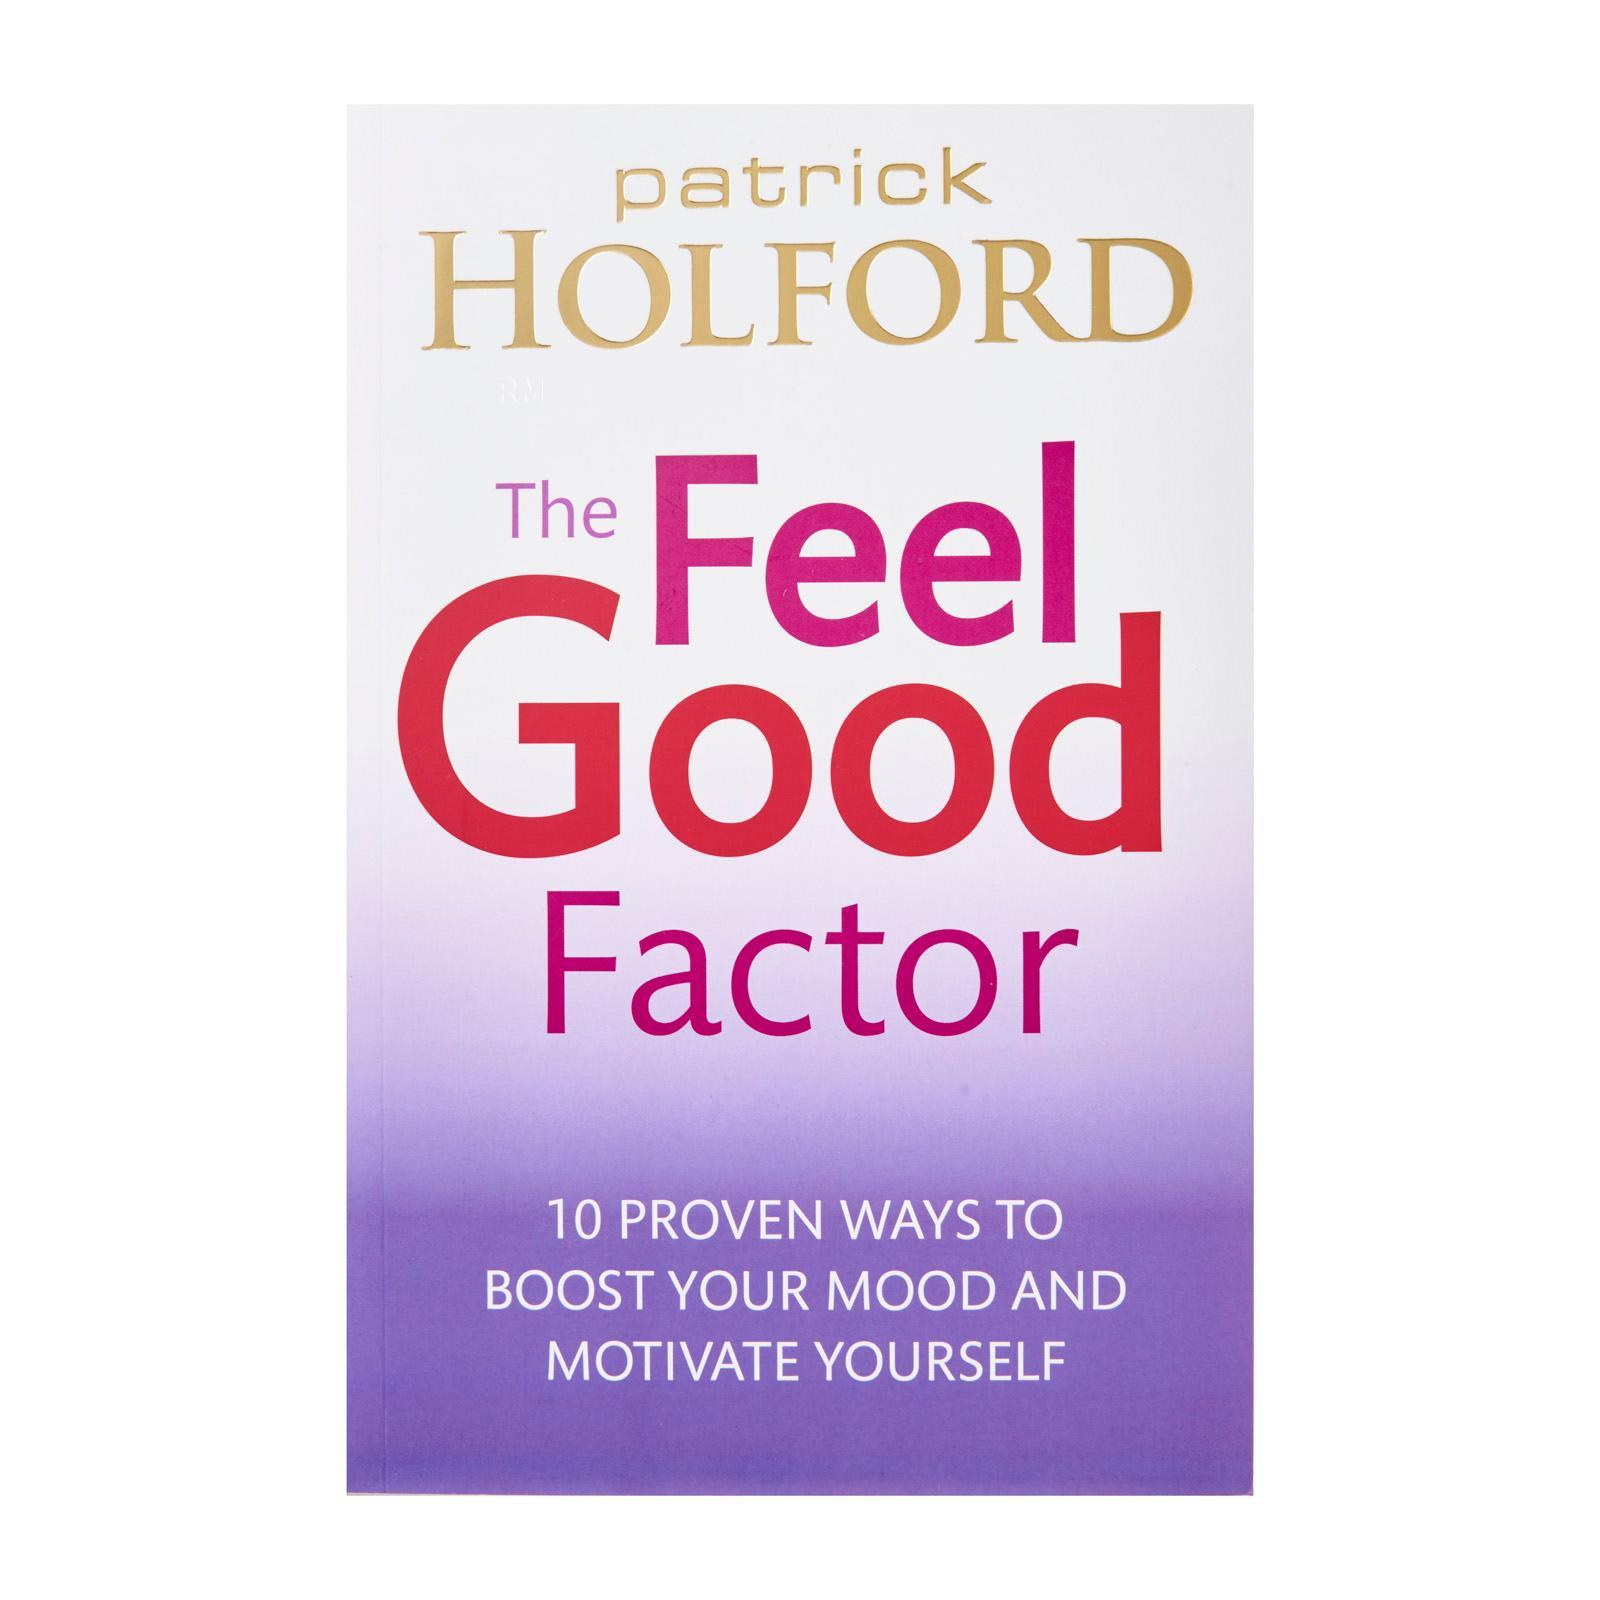 The Feel Good Factor: 10 Proven Ways To Boost Your Mood And Motivate Yourself By Patrick Holford